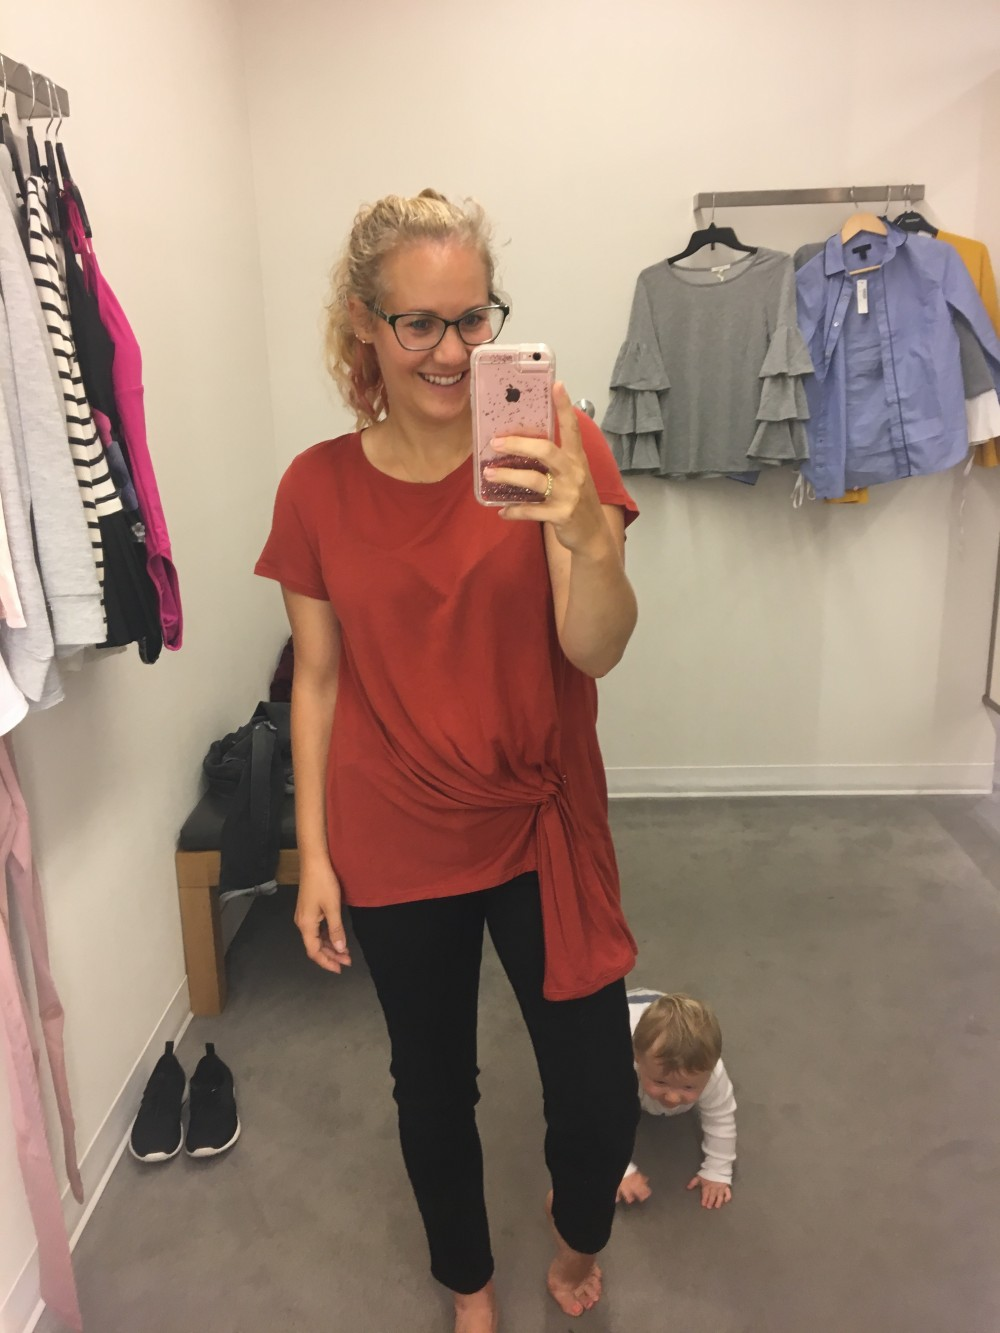 Dressing Room Diaries- Nordstrom Anniversary Sale 2017-Fall Tops-Blogger Picks for the Nordstrom Anniversary Sale-Nordstrom Sale-Fall Style-Fall Fashion 2017-Have Need Want 3